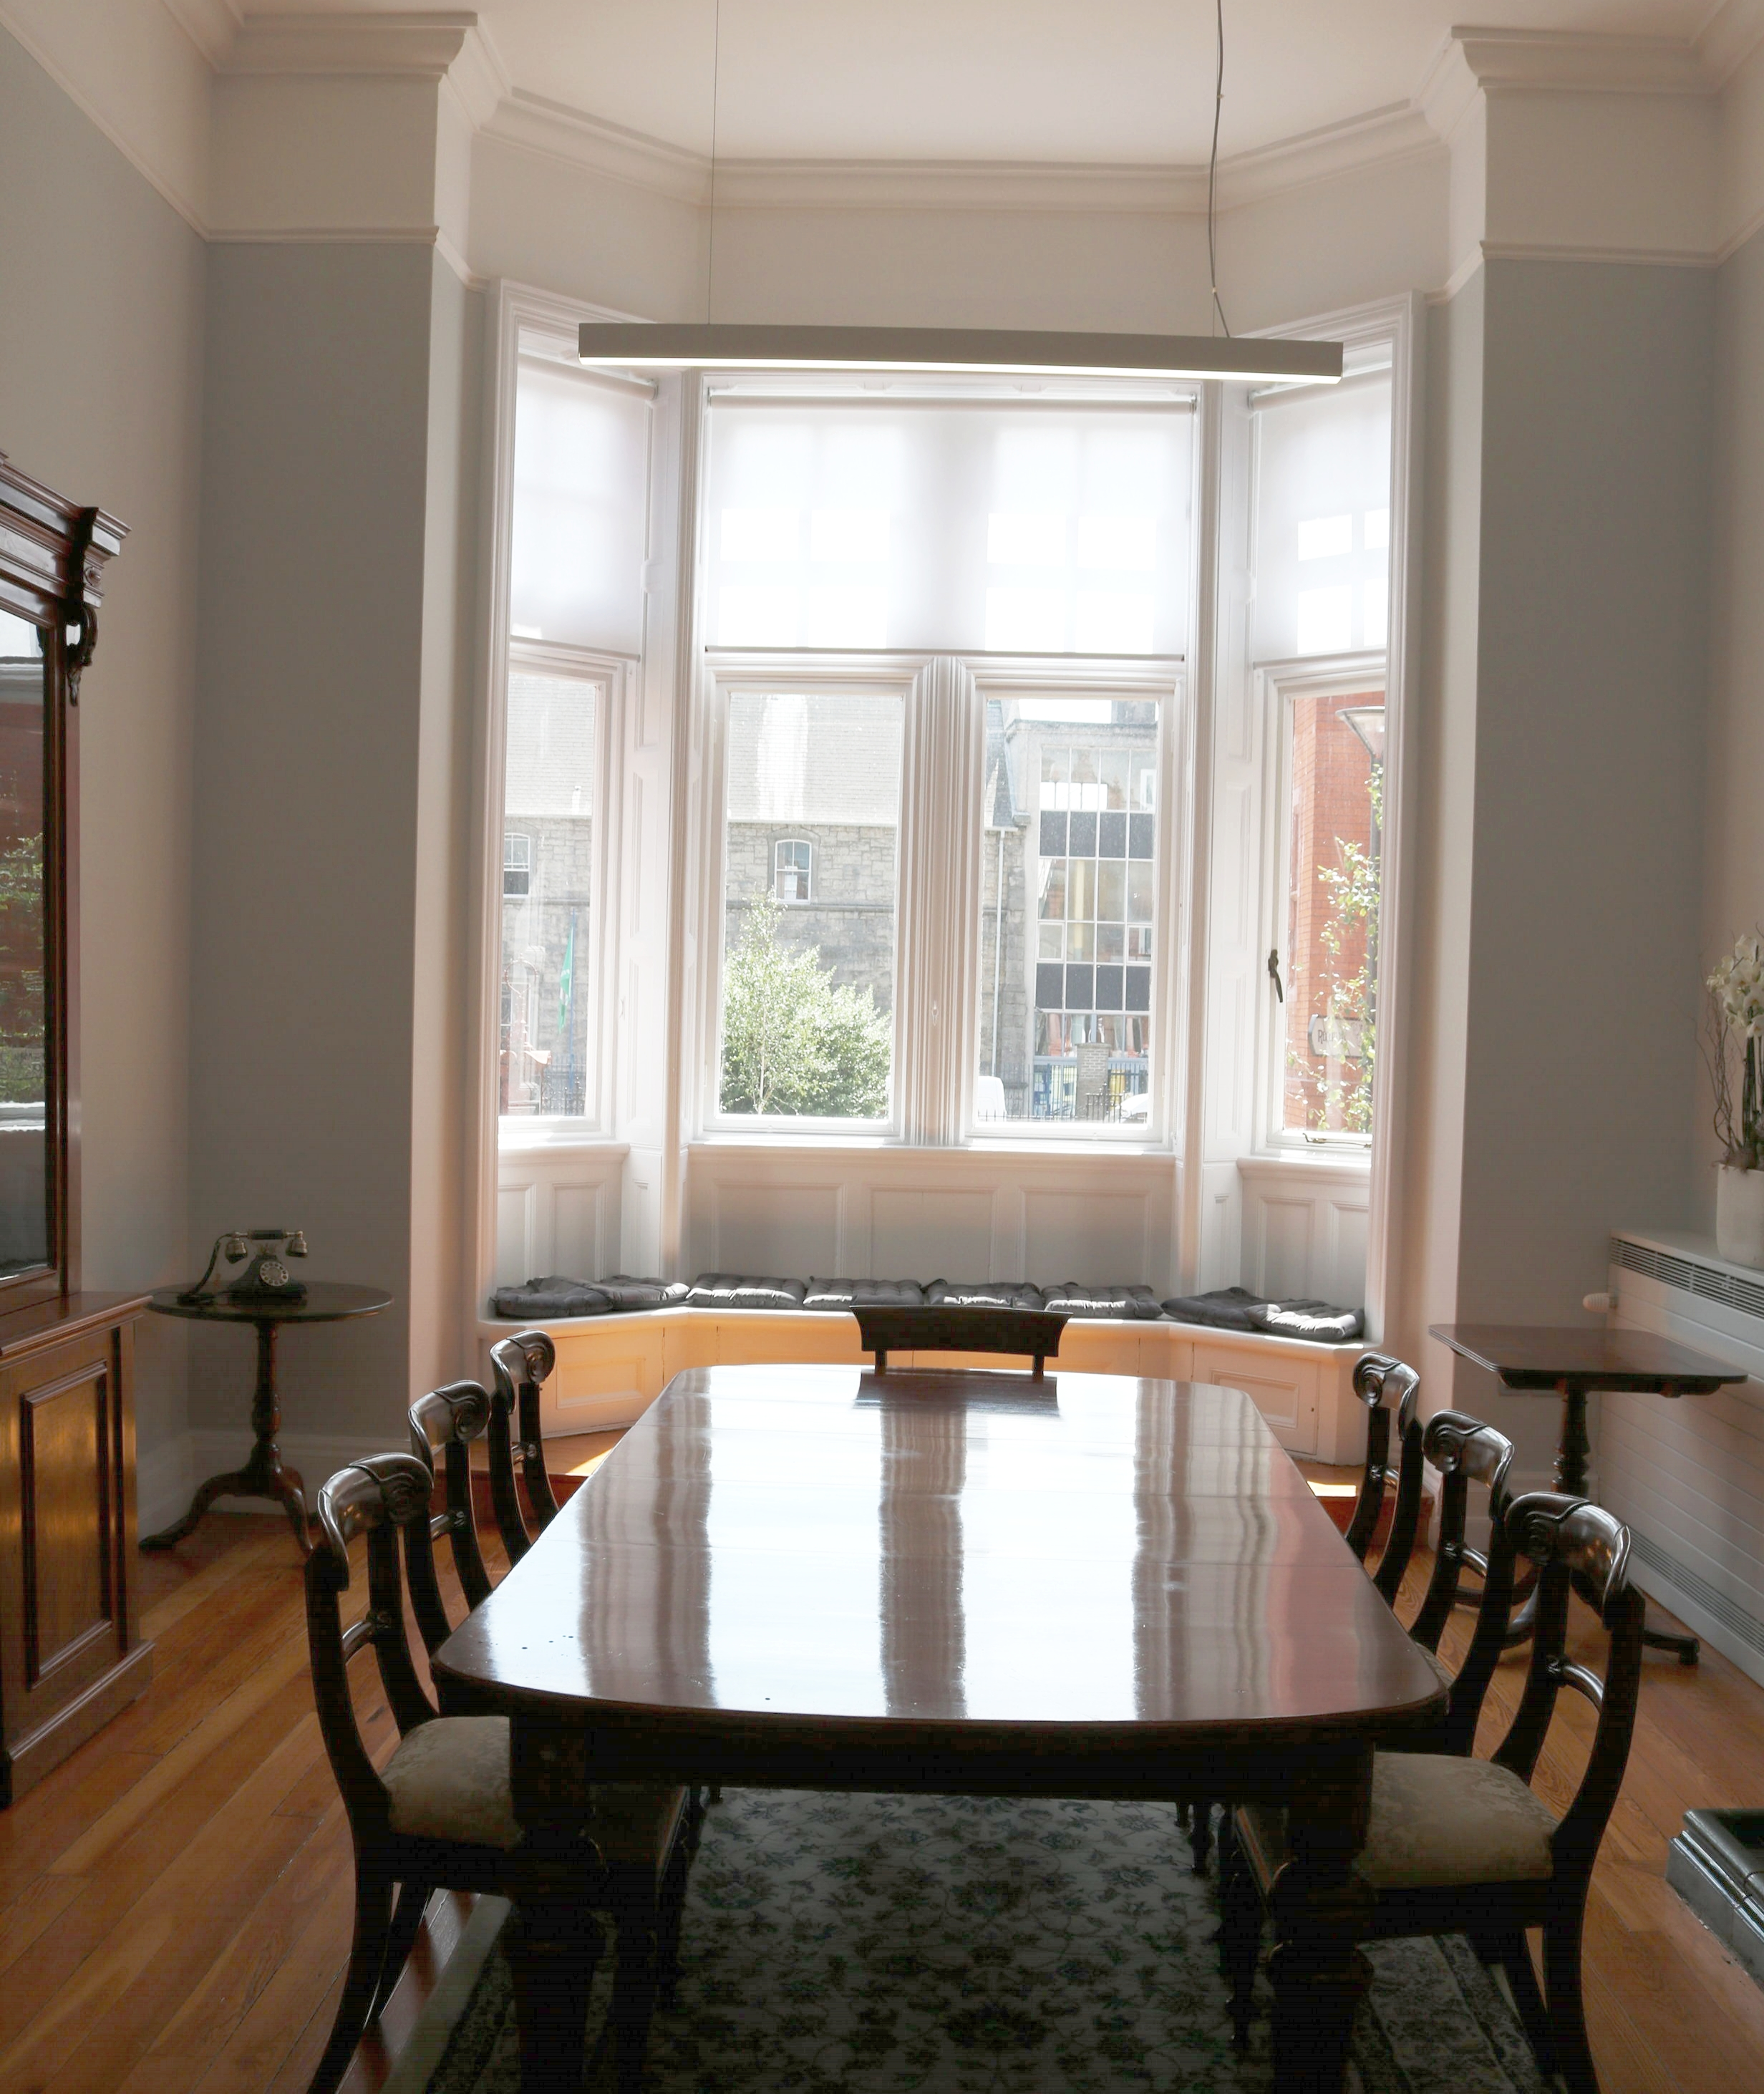 Drawing Room - The drawing room boasts original wooden floors and fireplace as well as antique furniture providing a comfortable space for small meetings. A bay window provides a stunning view of our carefully manicured gardens and round courtyard, the focus is which is an elegant fountain.